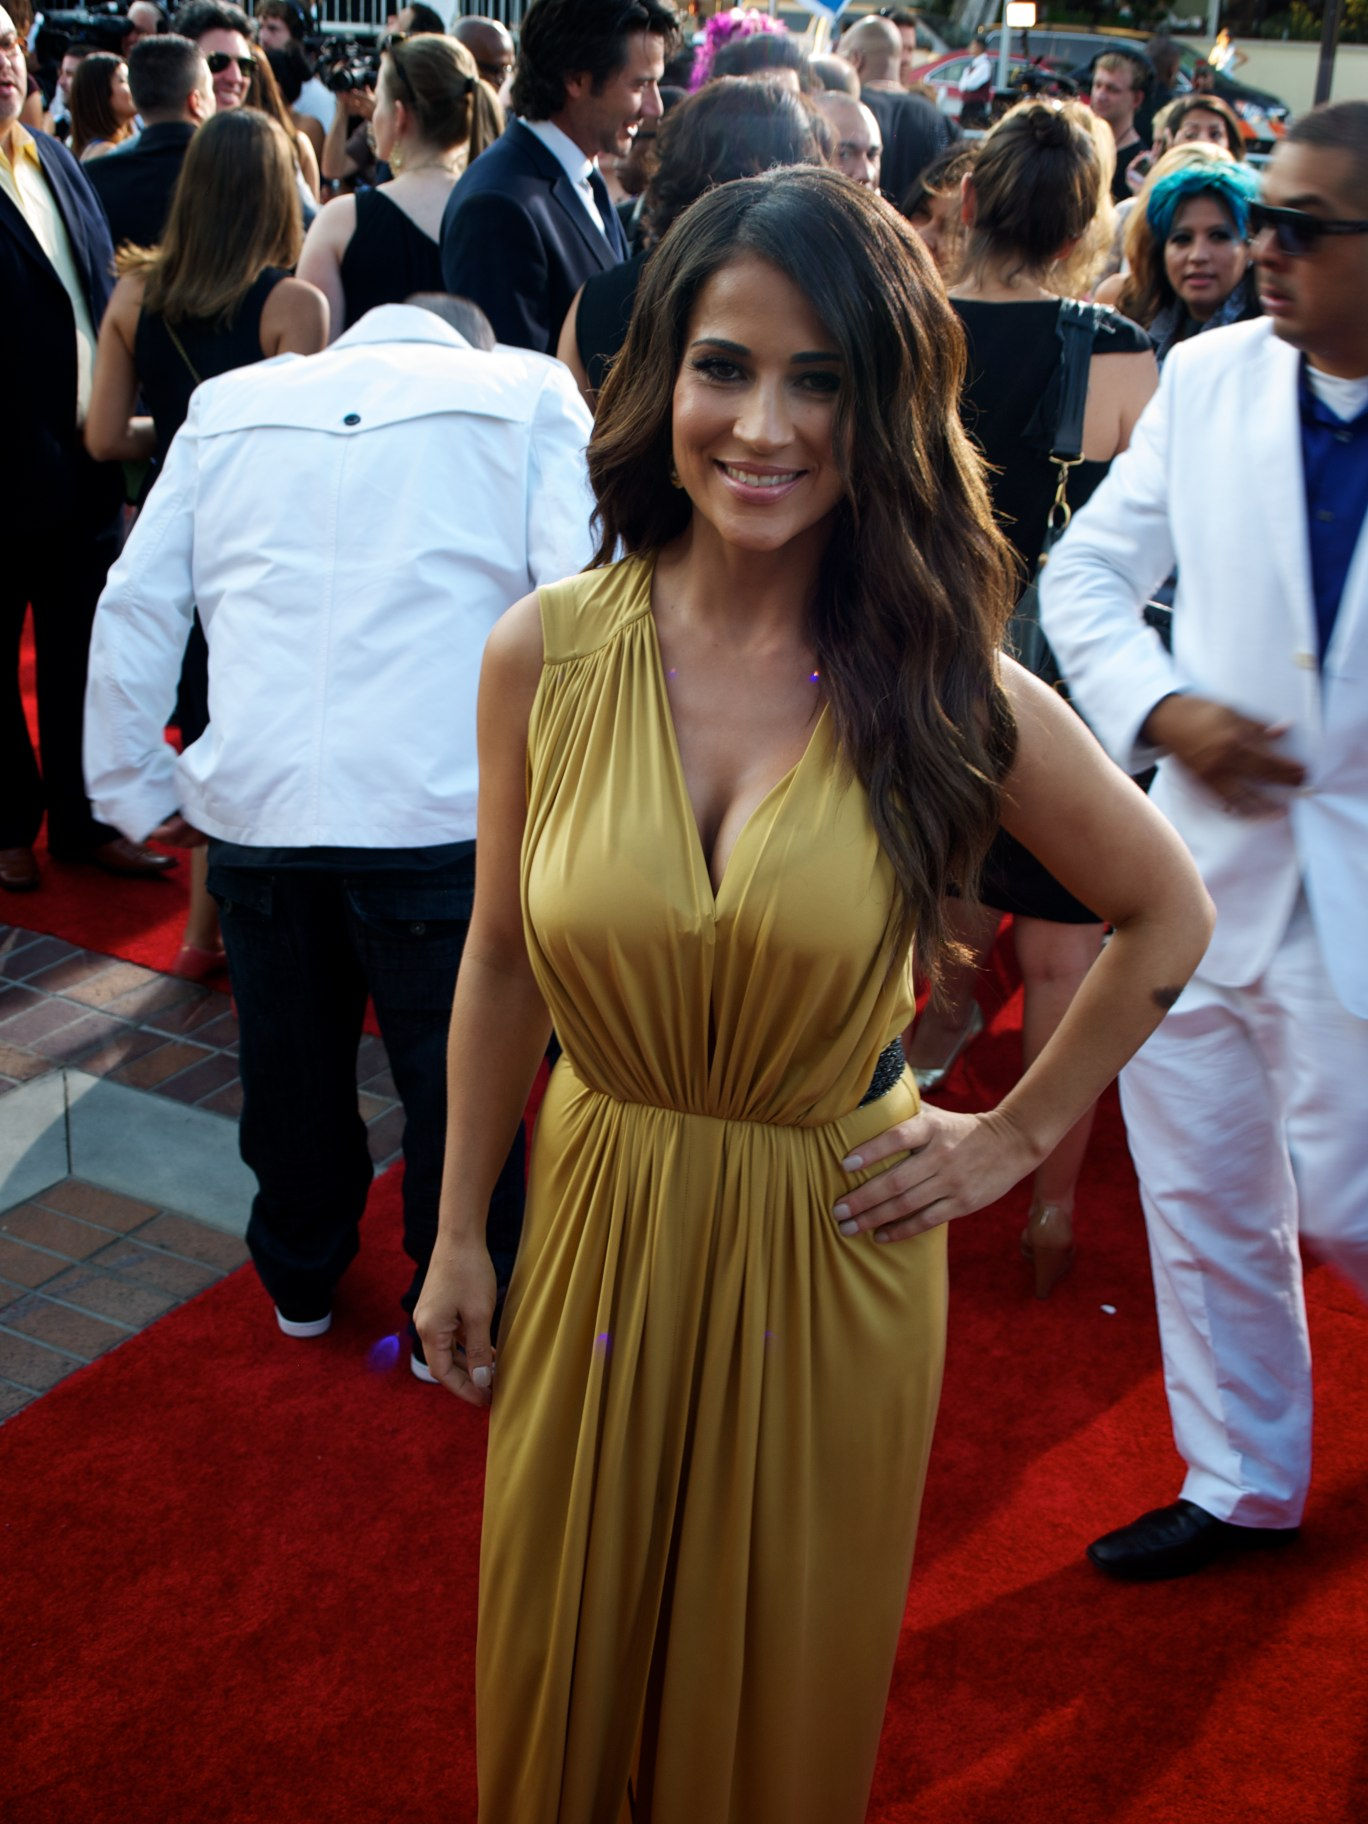 Photo of Jackie Guerrido: Puerto Rican journalist